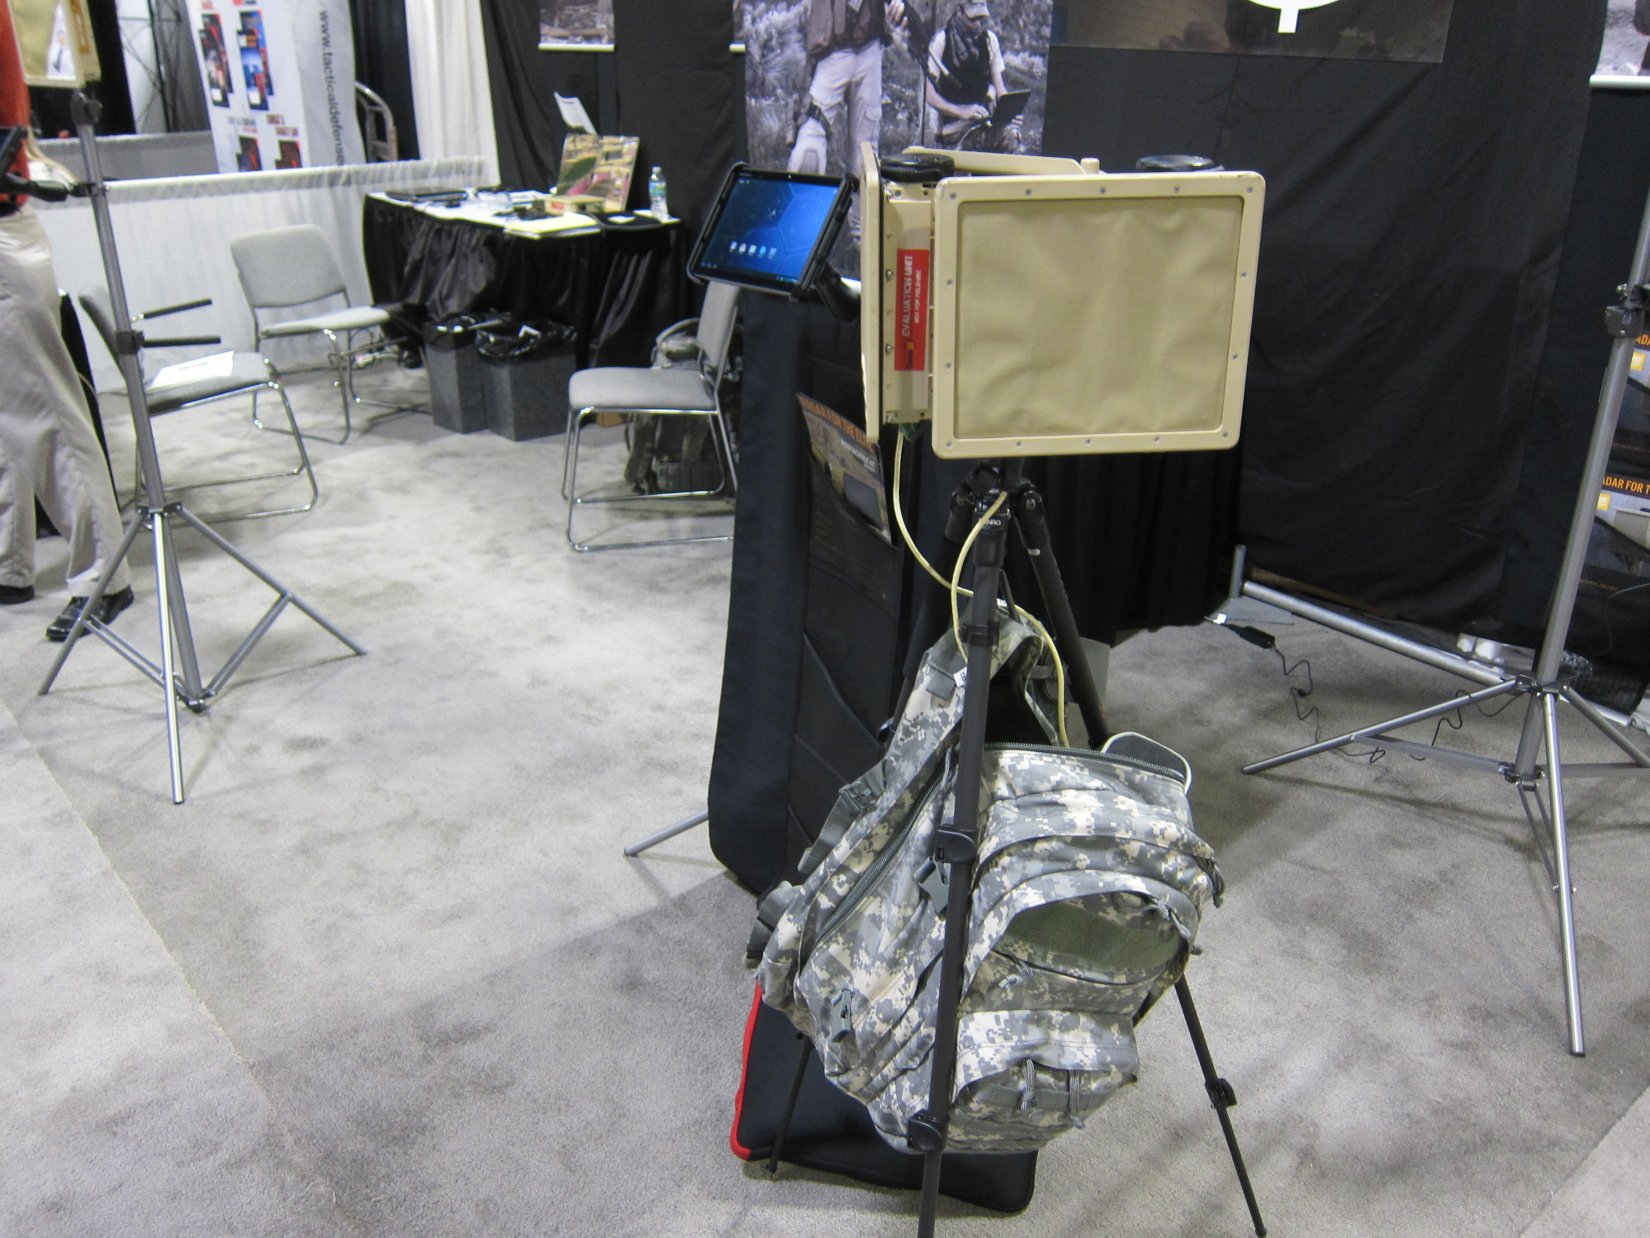 "SpotterRF Radar Backpack Kit (or ""Backpack Radar Kit""): Compact, Lightweight Backpackable/Manpackable Ground Moving Target Indicator (GMTI) Motion-Tracking Perimeter Surveillance Radar (PSR) System for Military Special Operations Forces (SOF) Perimeter Security and Force Protection Applications (SOFIC 2012 Demo Video!)"